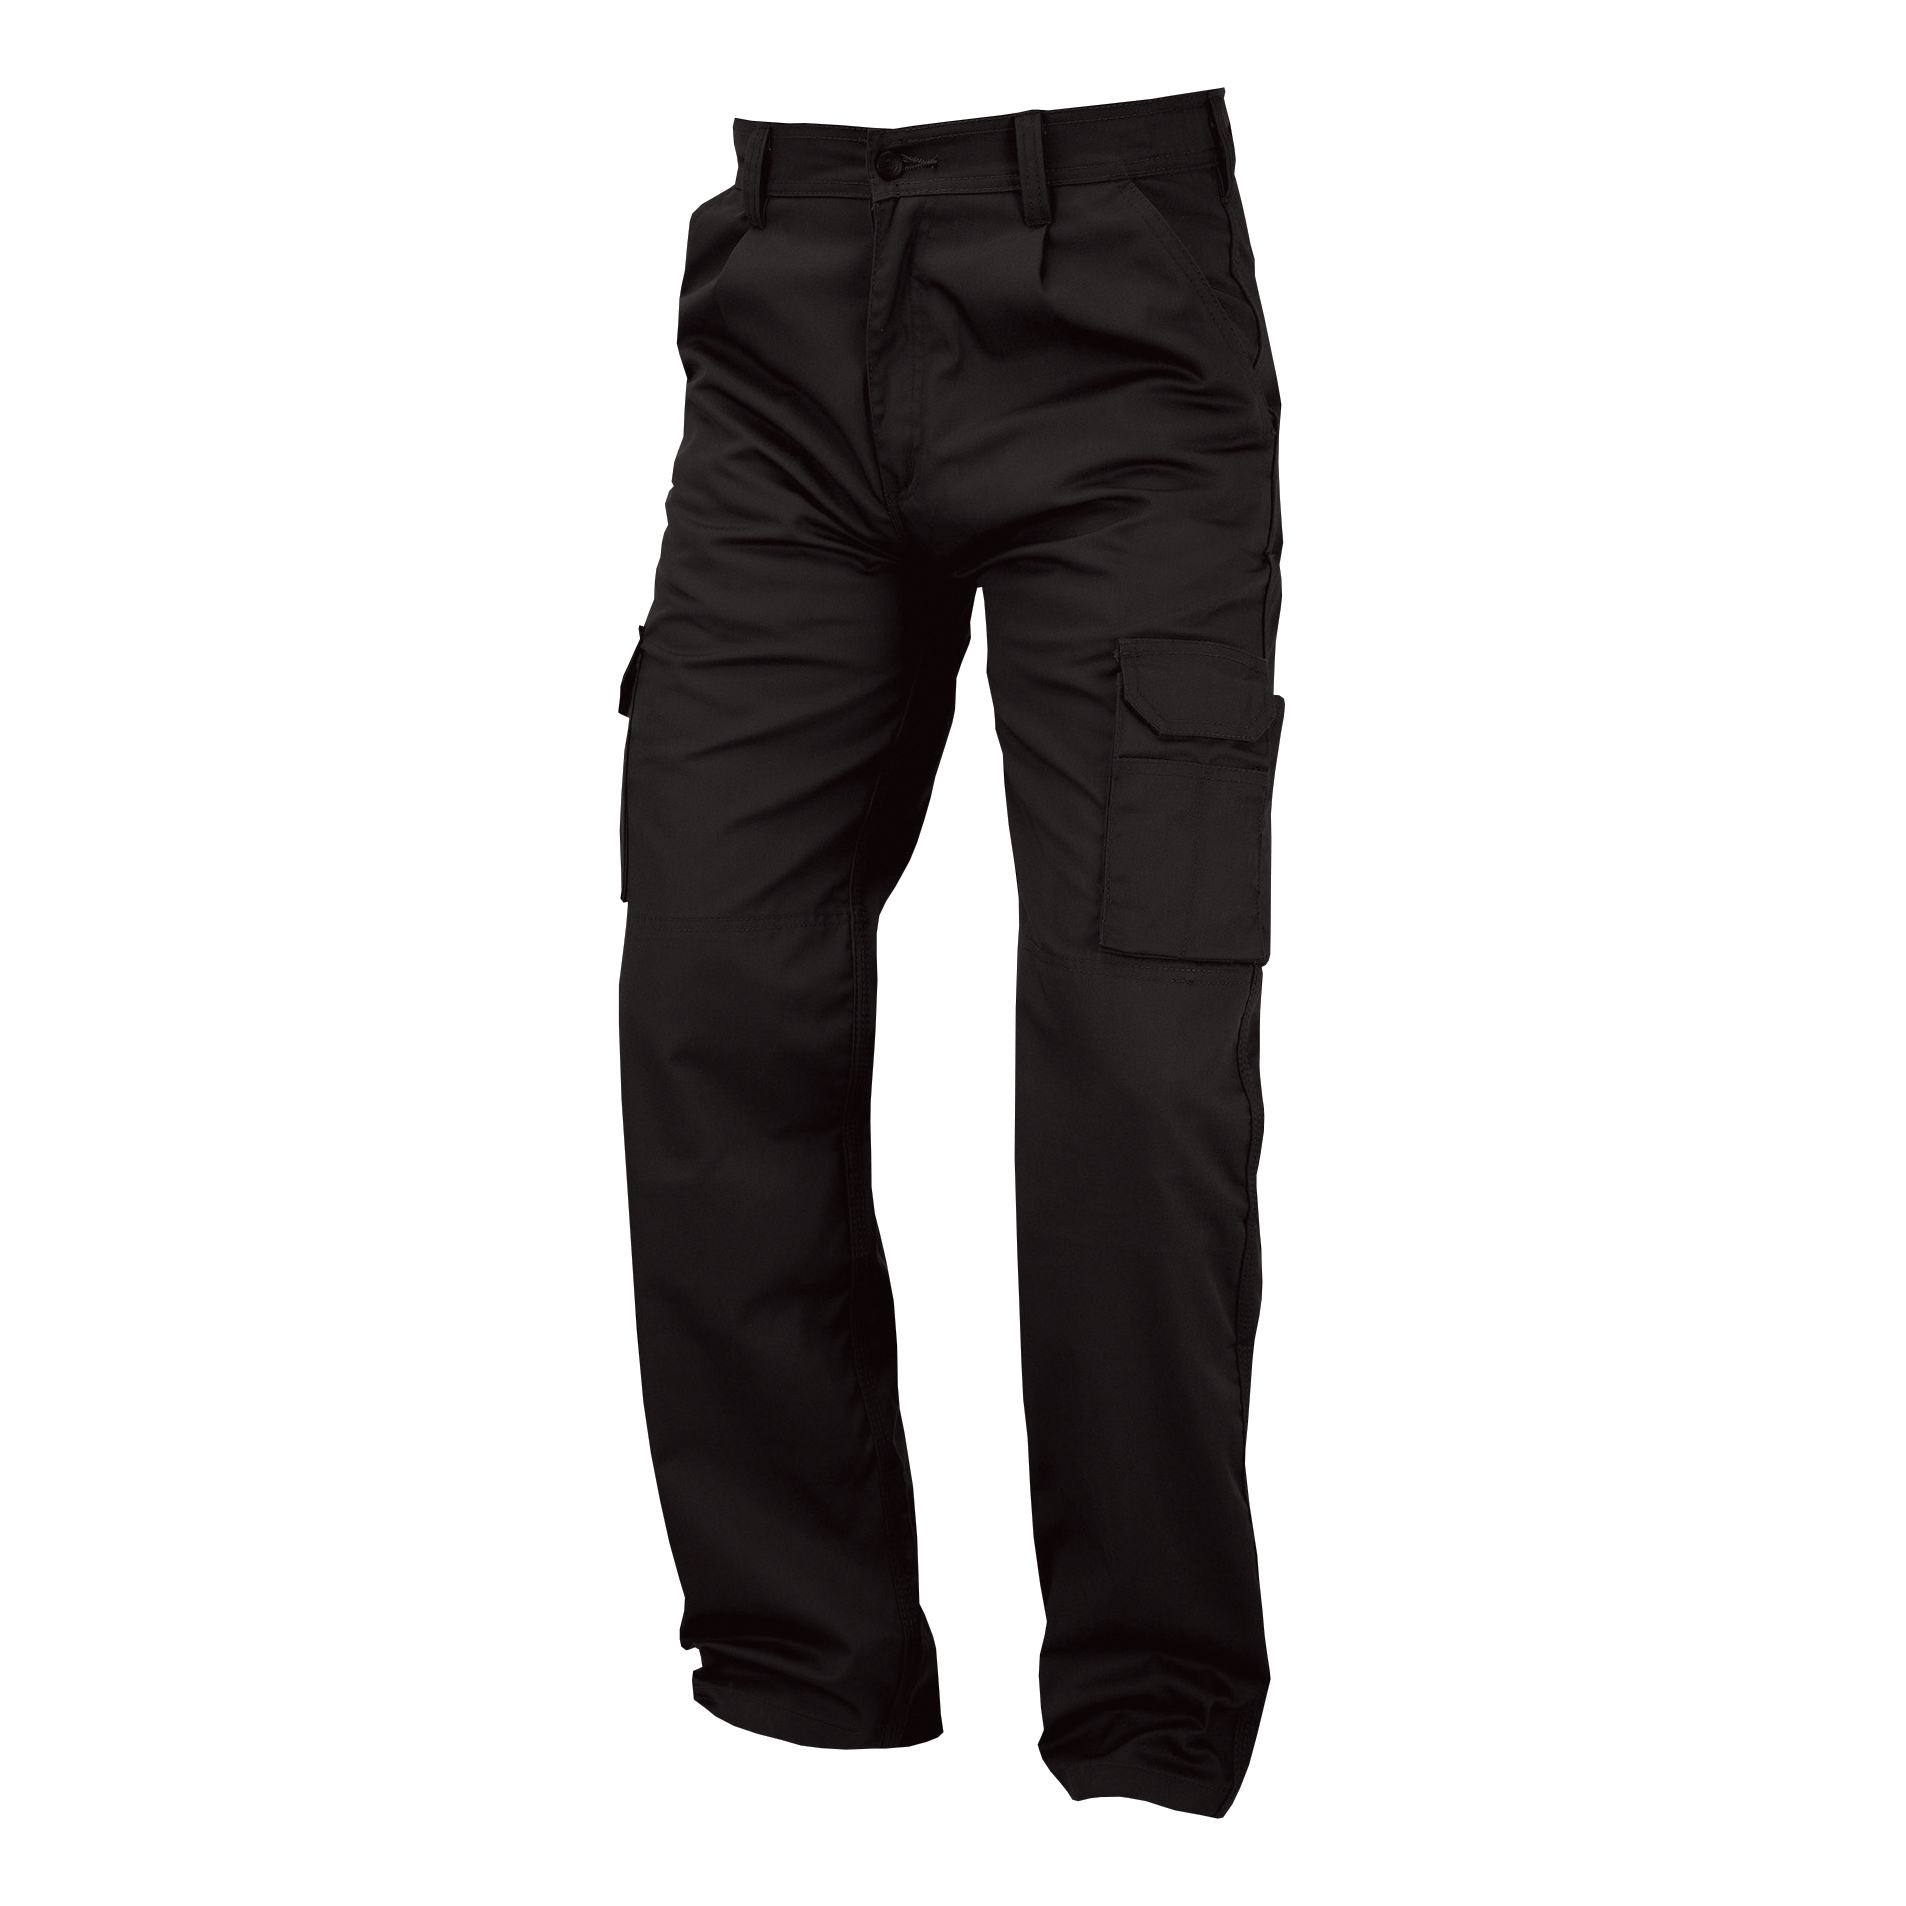 Combat Trouser Multi-functional Waist 40in Leg 29in Black Ref PCTHWBL40S *Approx 3 Day Leadtime*